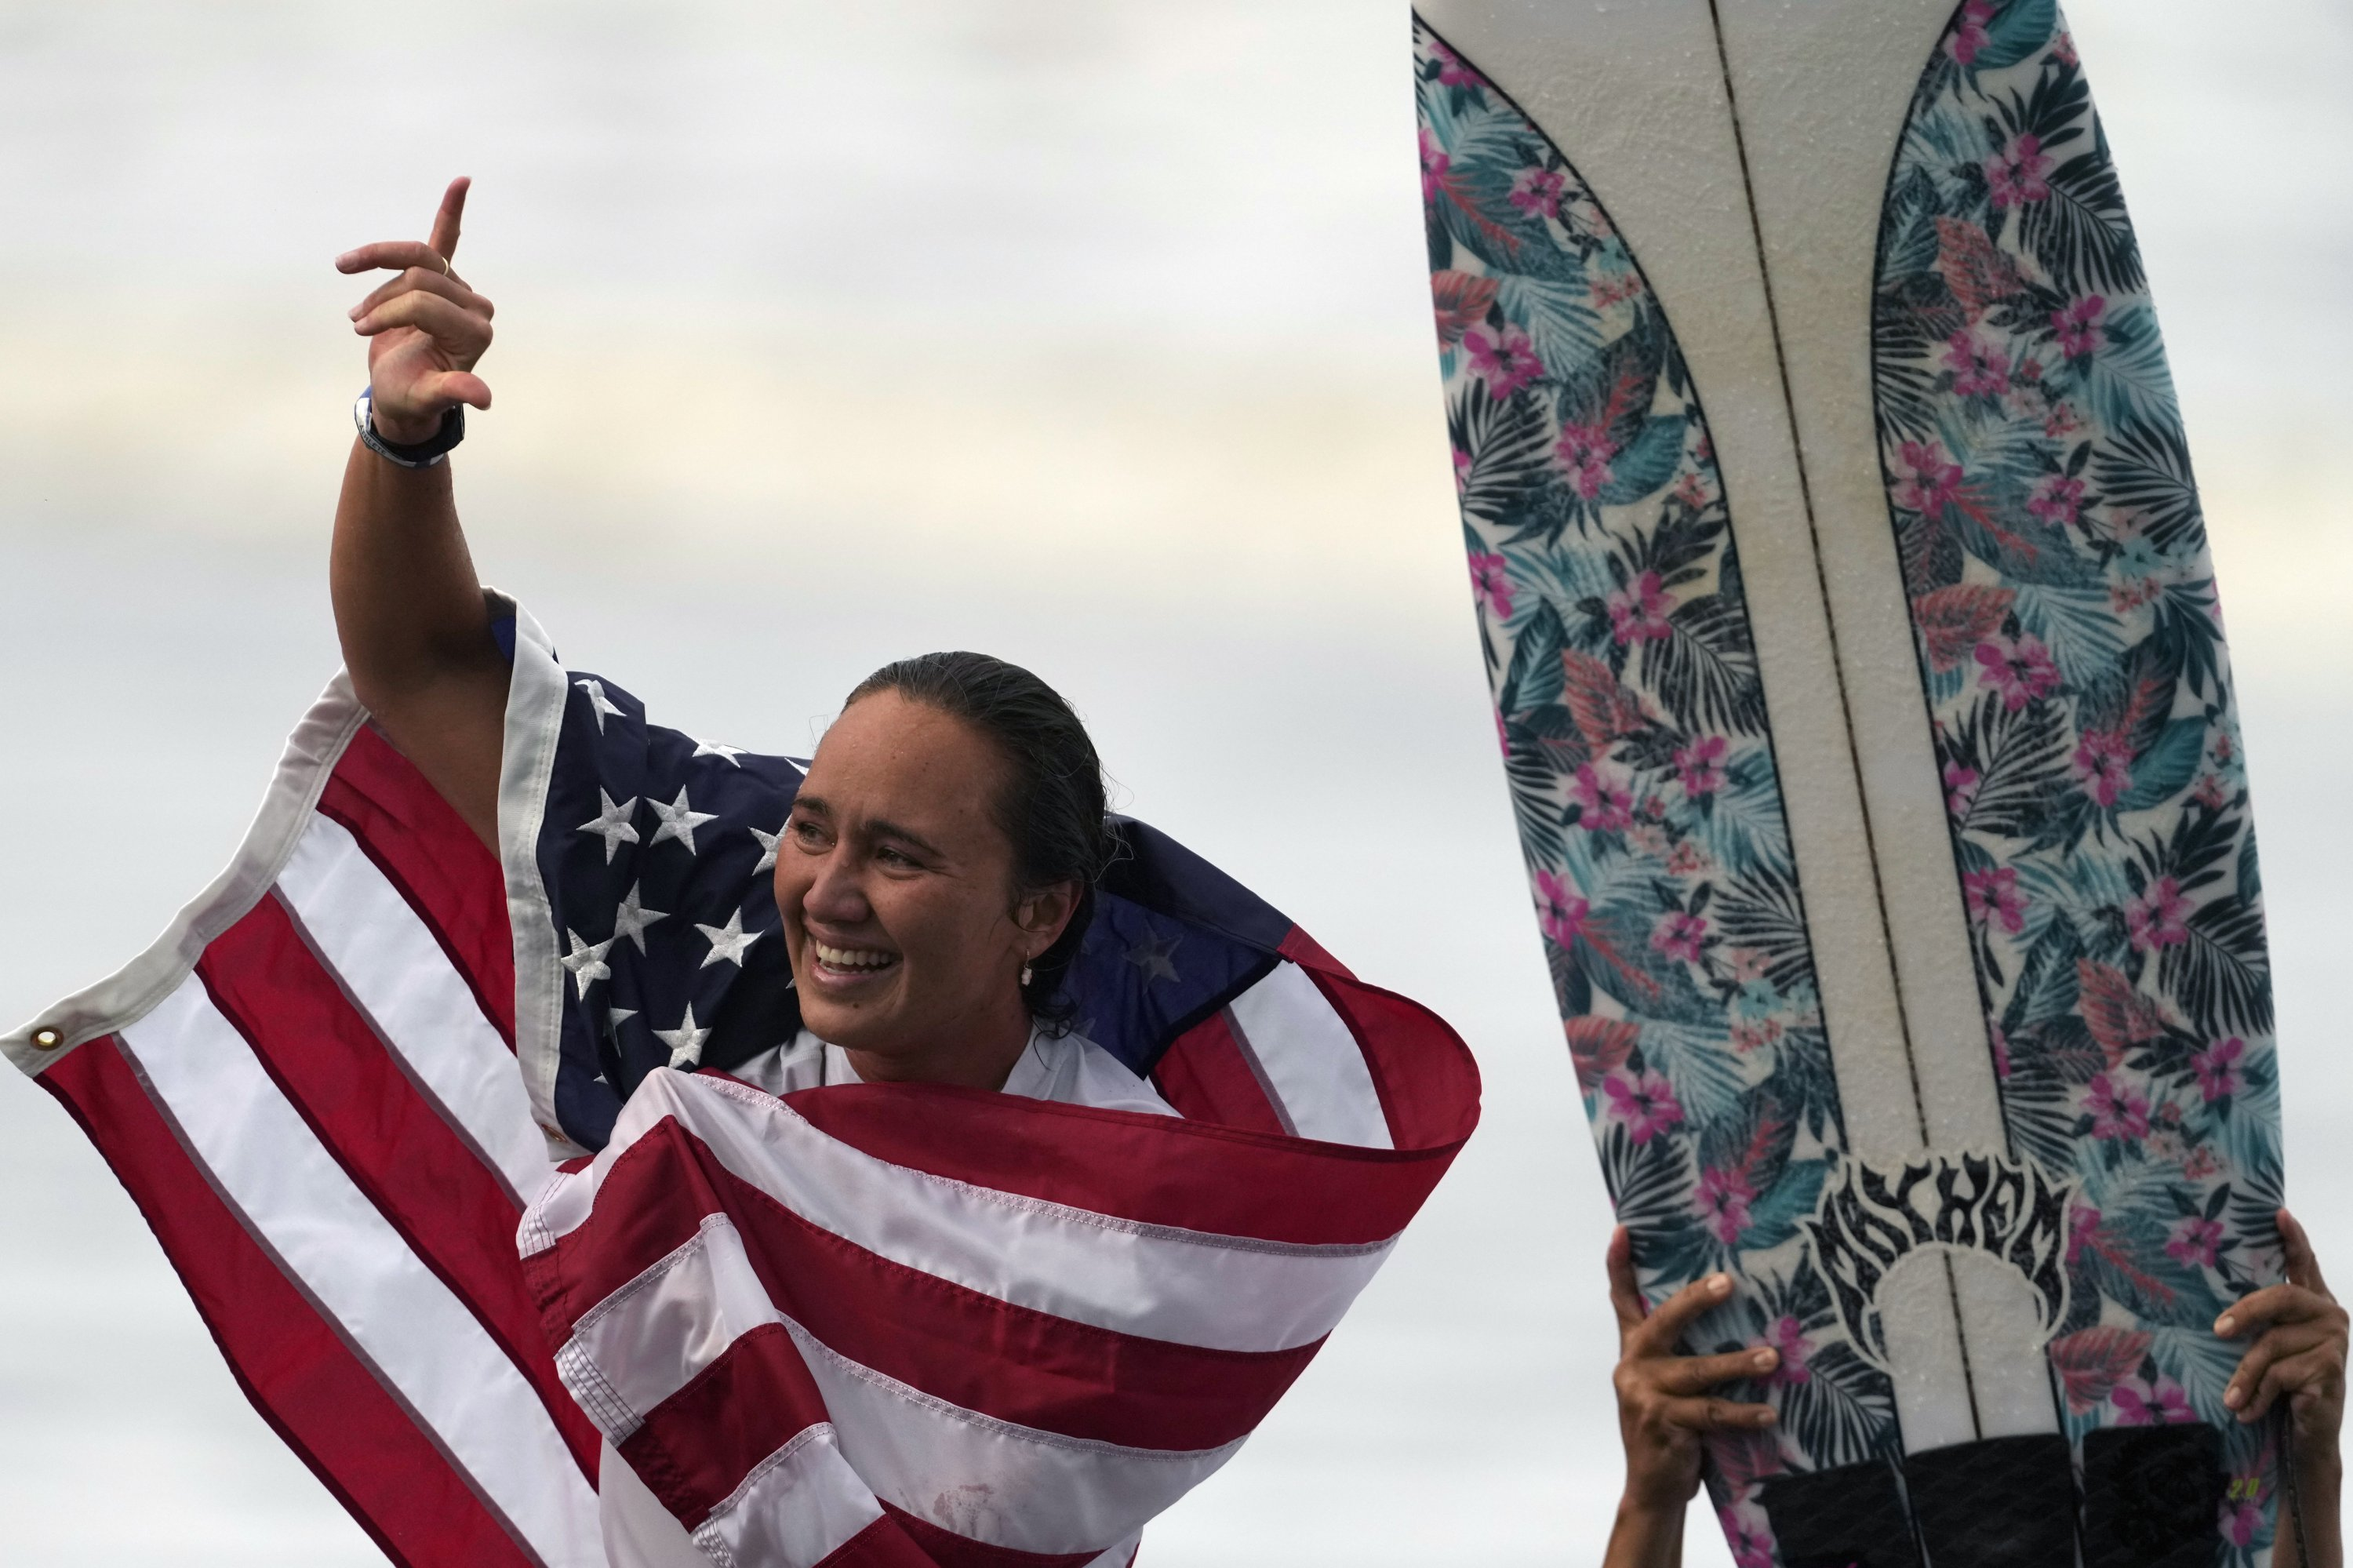 U.S.'s Carissa Moore celebrates winning the gold medal in the women's surfing competition at the 2020 Summer Olympics at Tsurigasaki Surfing Beach, Chiba, Japan, July 27, 2021. (AP Photo)